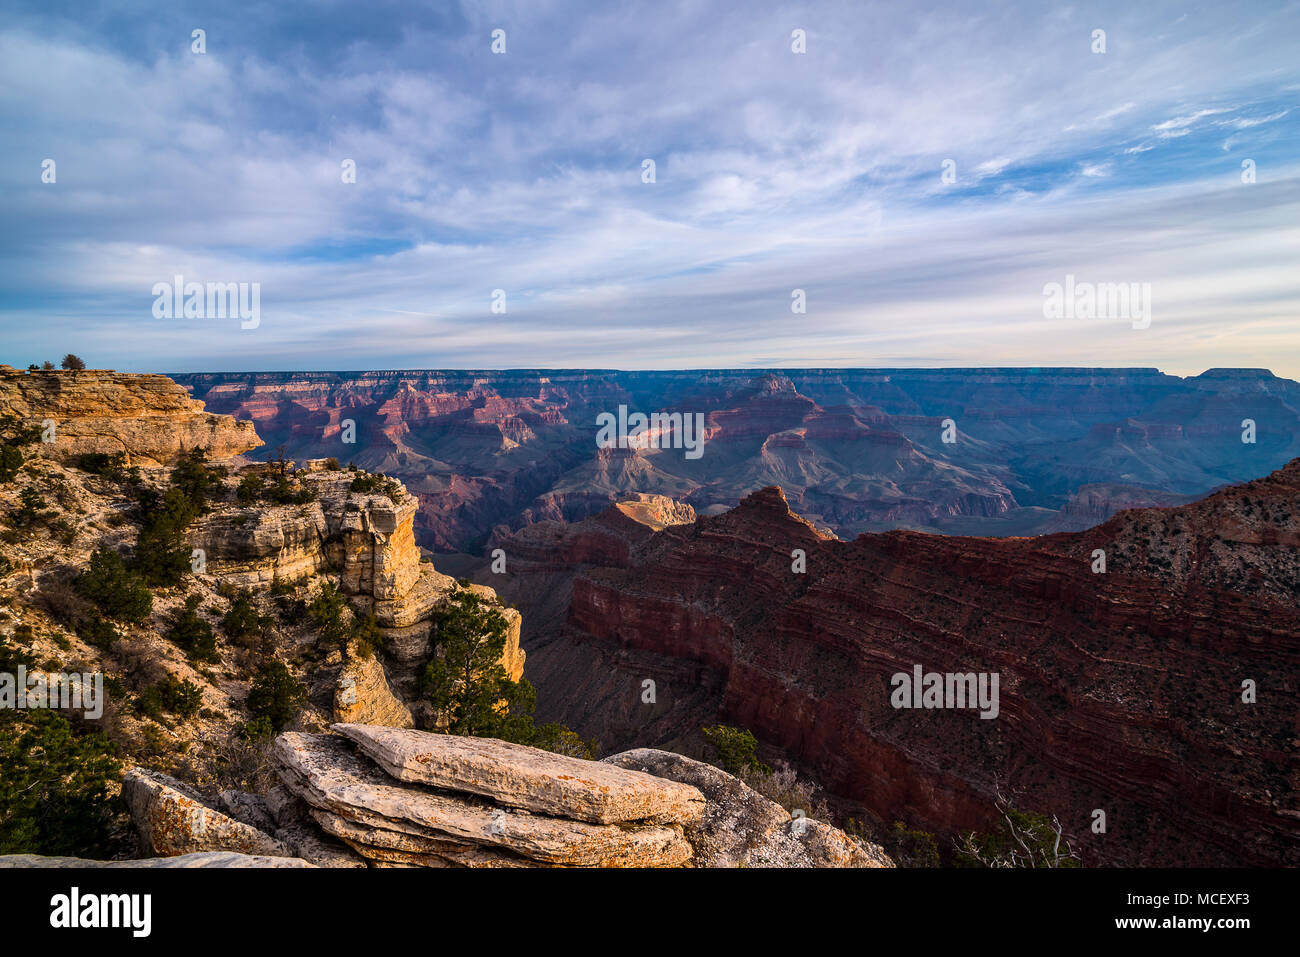 Le Parc National du Grand Canyon, Arizona USA Banque D'Images